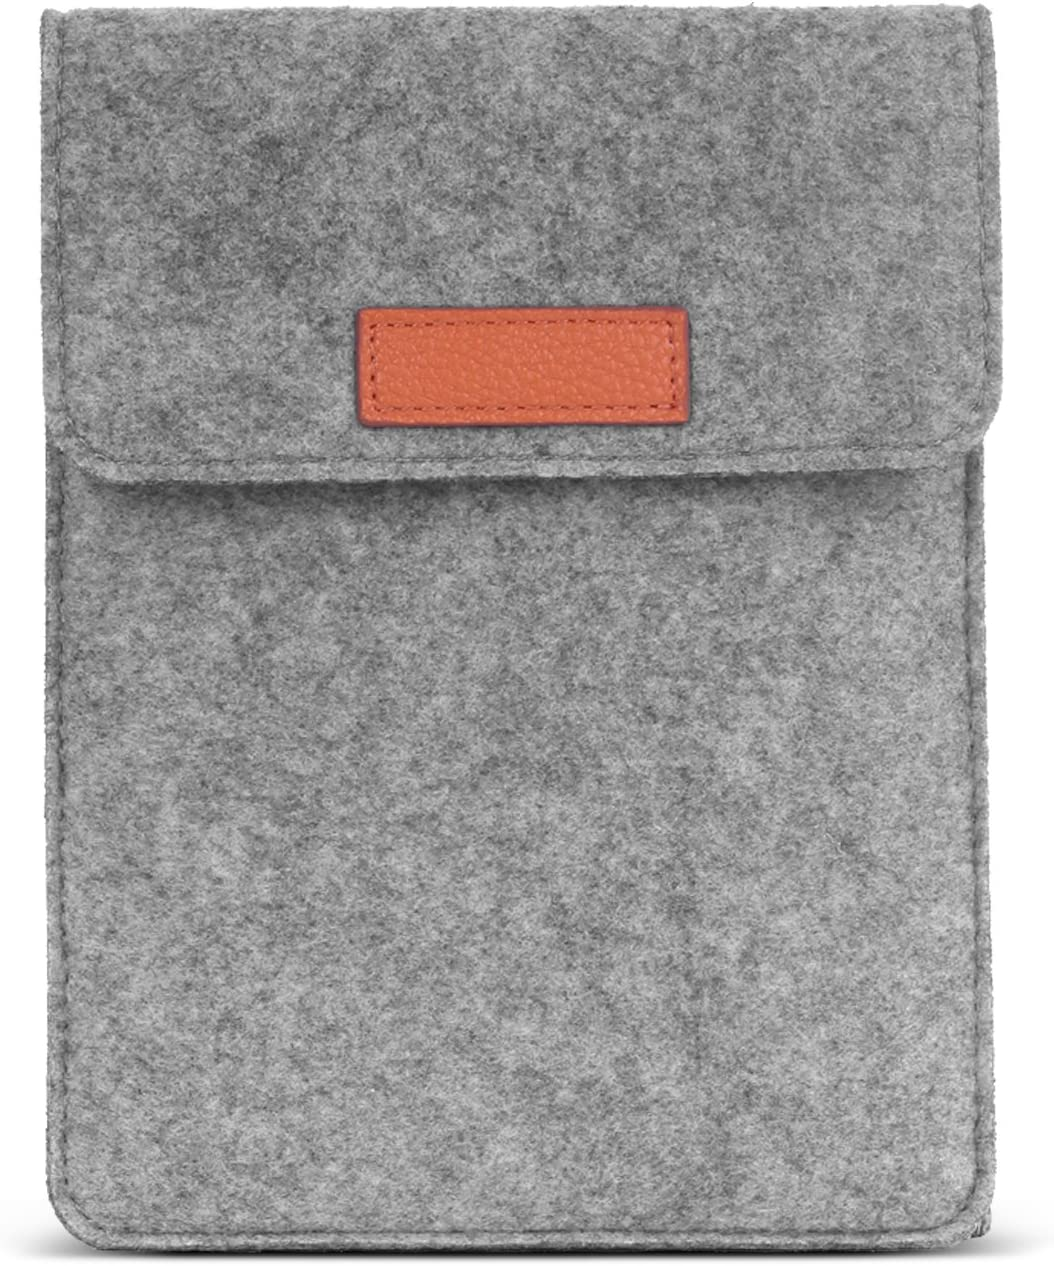 MoKo Sleeve for Kindle Paperwhite/Kindle Voyage, Protective Felt Cover Case Pouch Bag for Amazon Kindle Paperwhite/Voyage/Kindle(8th Gen, 2016) / Kindle Oasis 6-Inch E-Reader, Light Gray